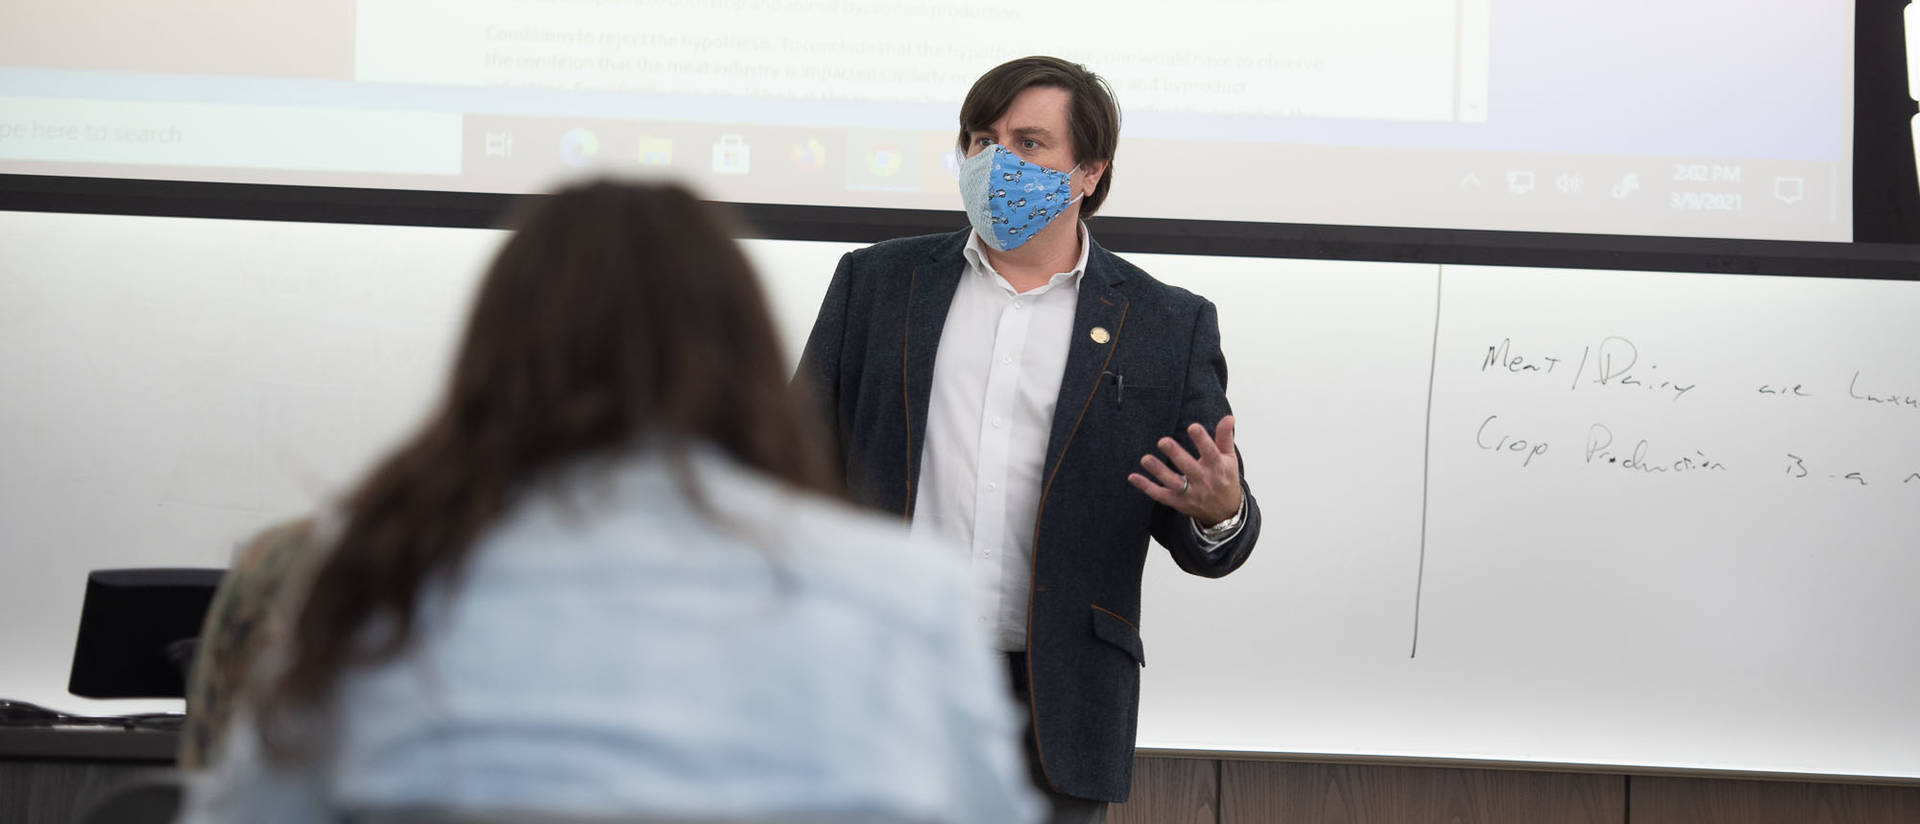 Dr. Thomas Kemp is teaching an economics class this semester that focuses on the economic impact of the COVID-19 pandemic.